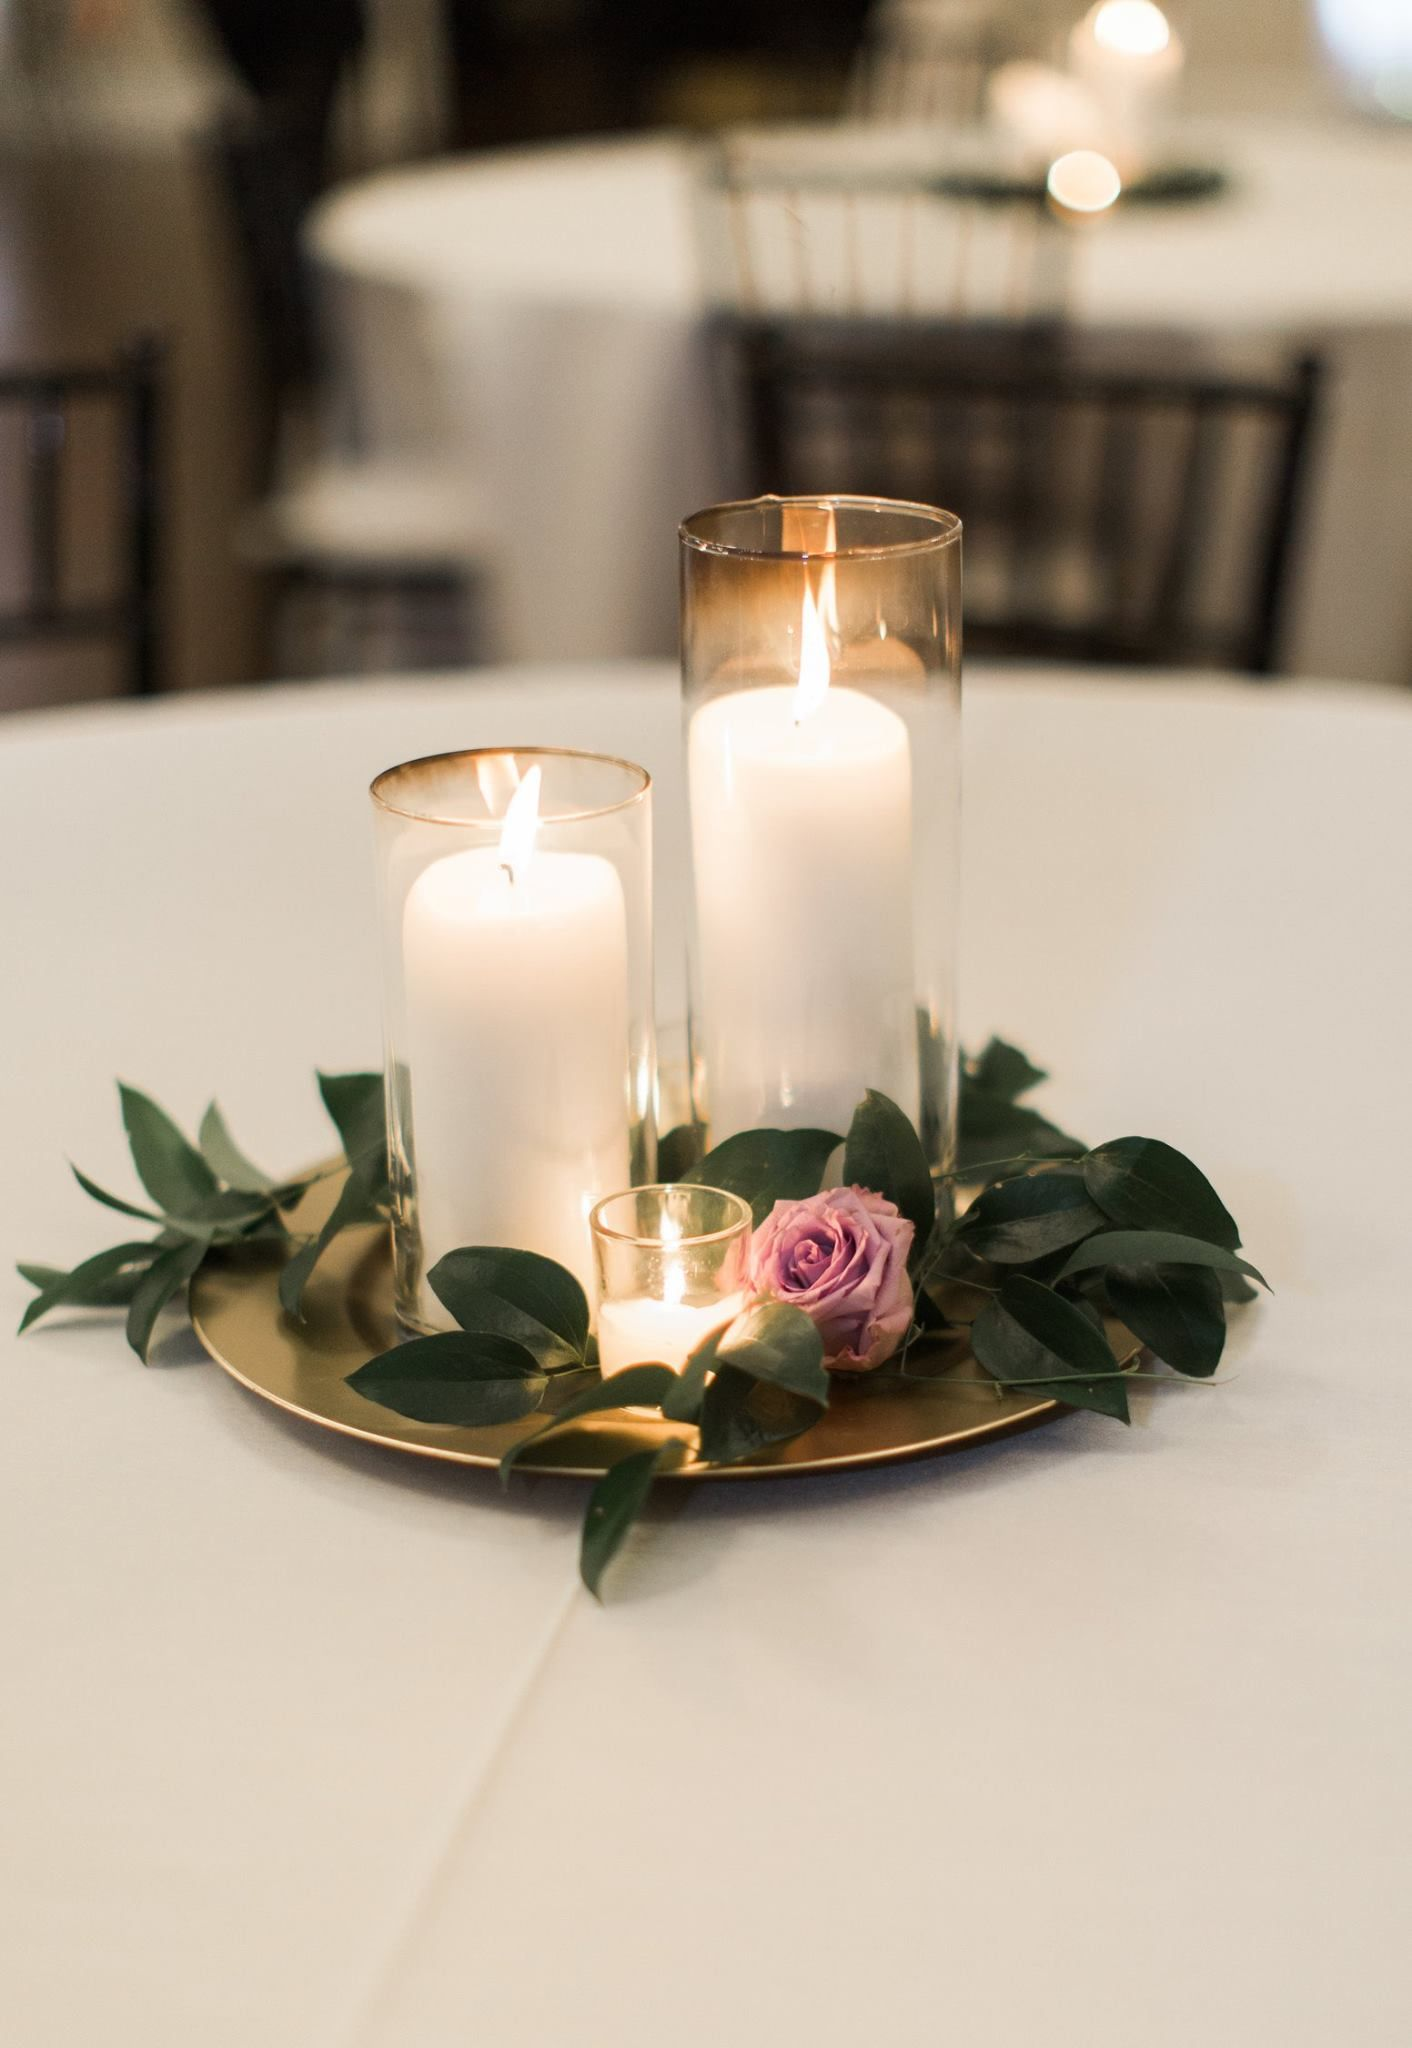 Candle wedding centerpiece purple and greenery centerpiece simple candle wedding centerpiece purple and greenery centerpiece simple wedding centerpiece izmirmasajfo